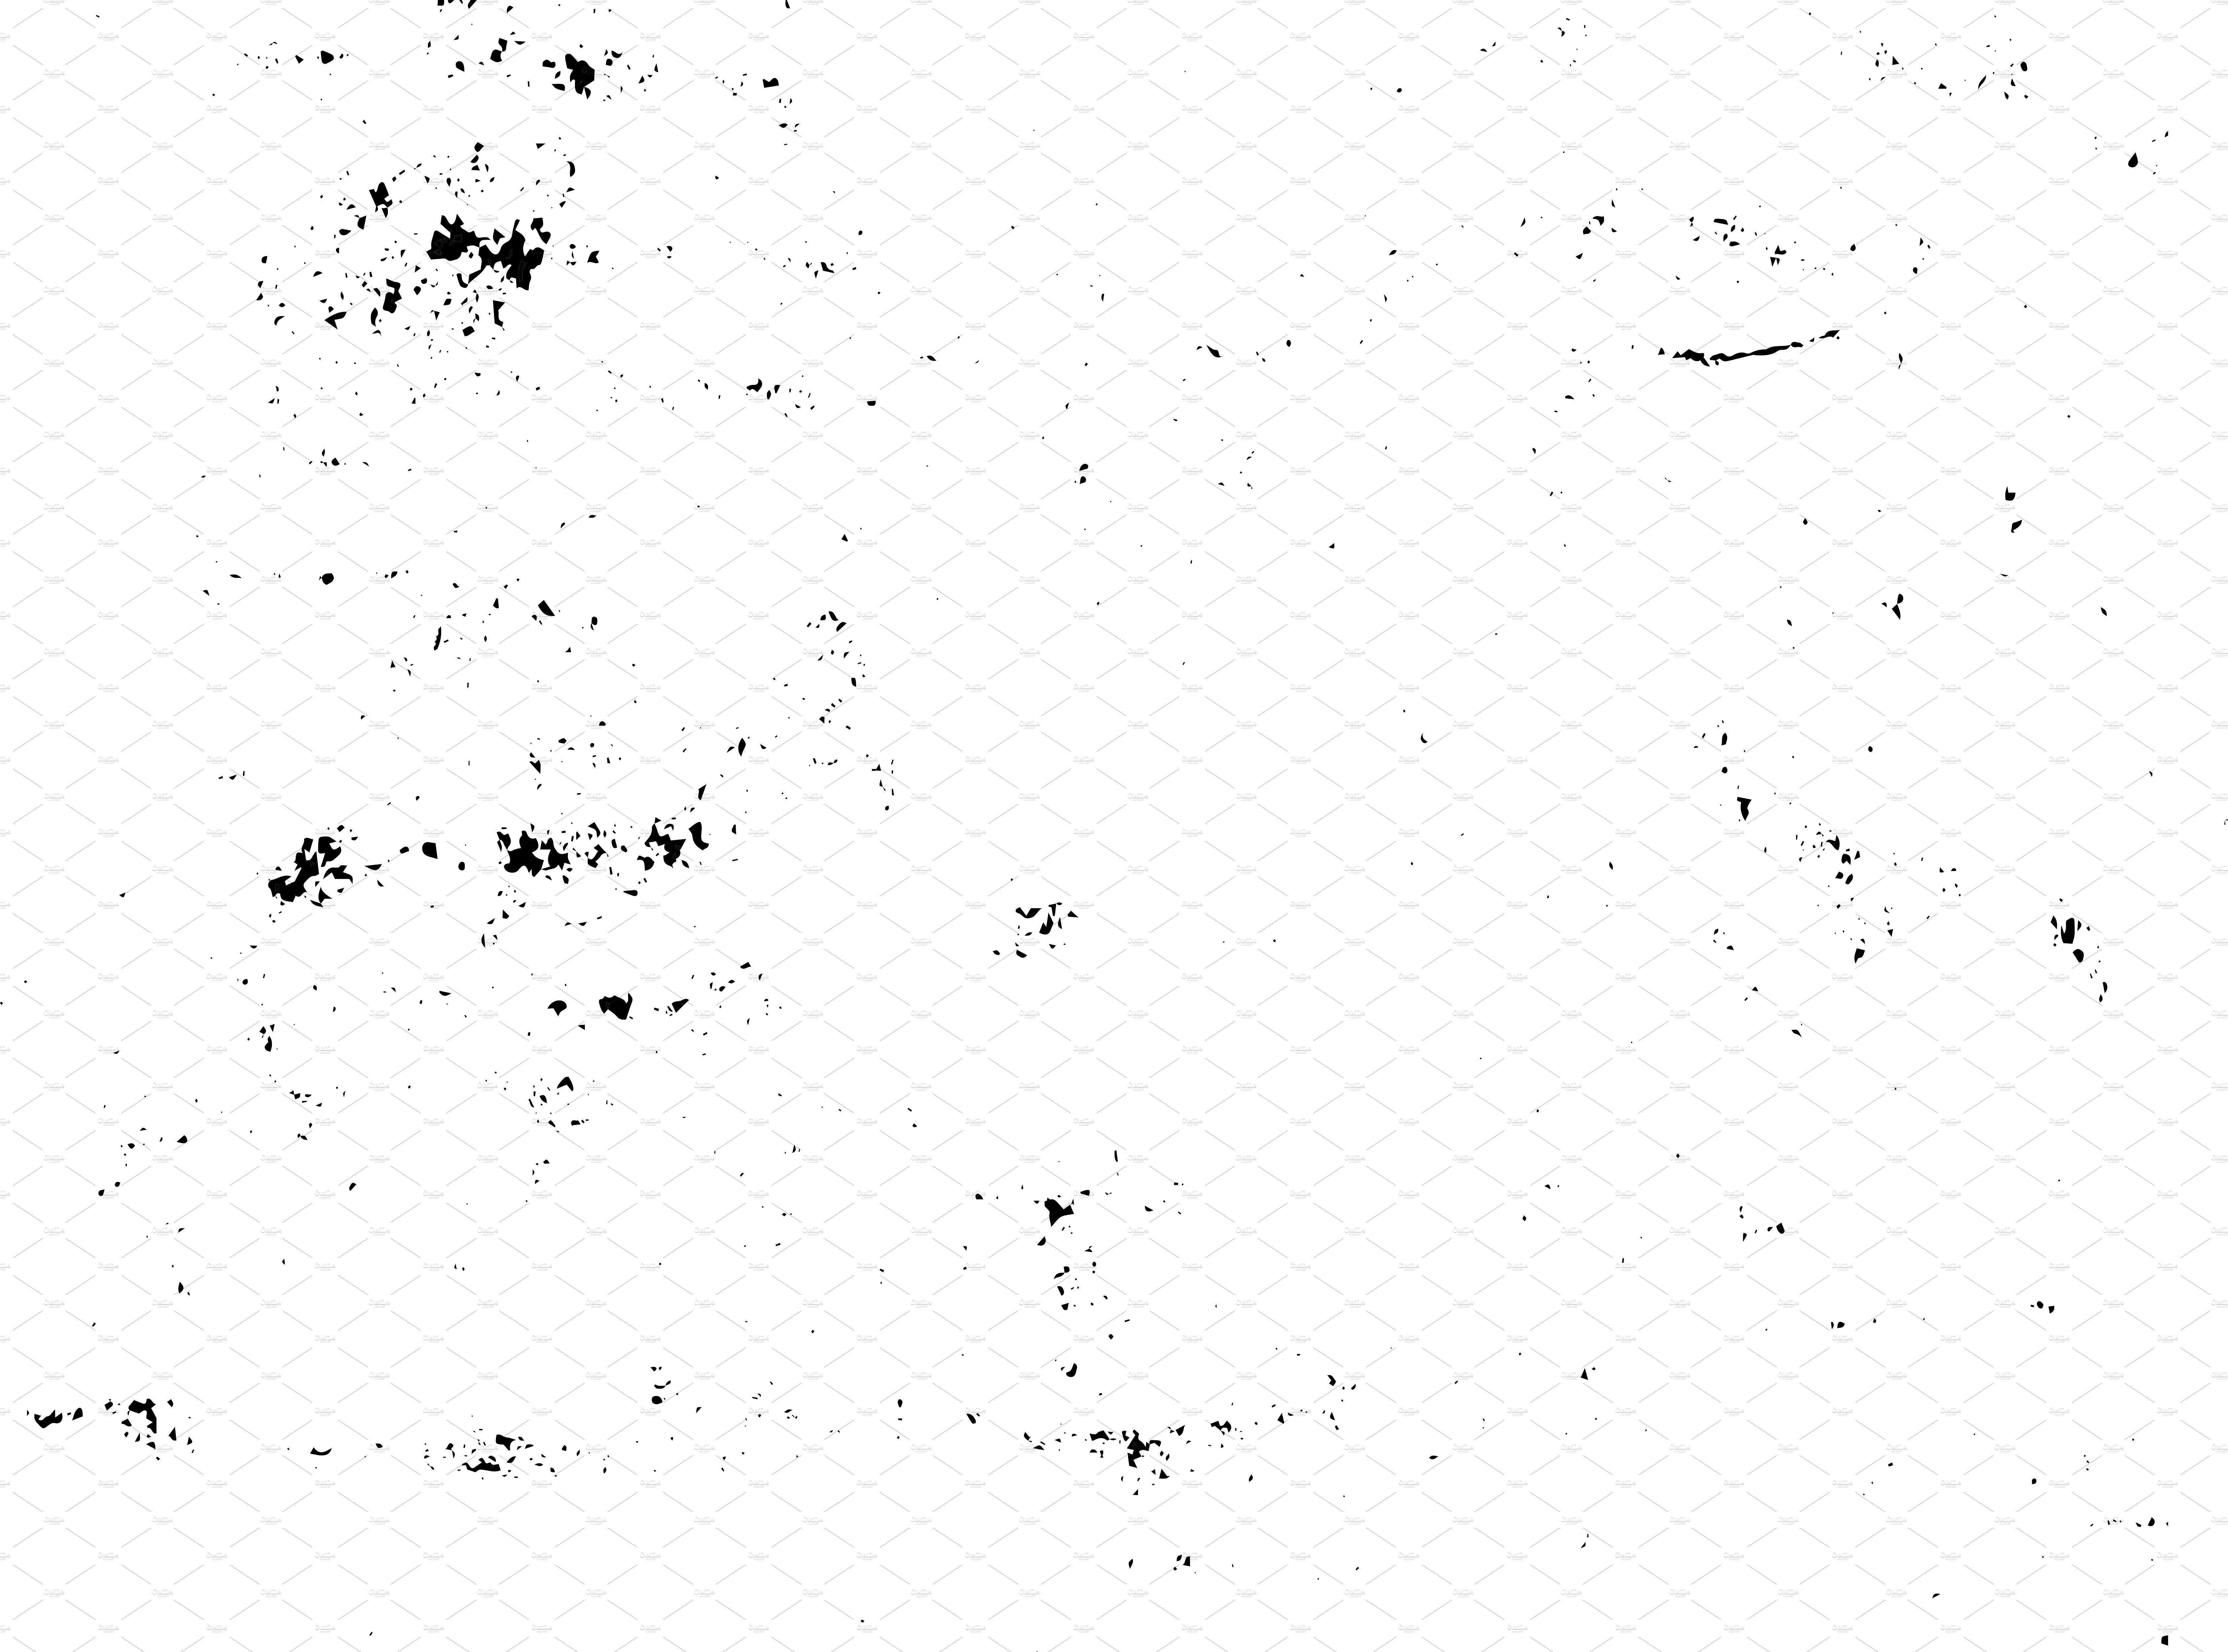 Dust Png Images Vector And Psd Files Free Download On Pngtree Png Images Photoshop Design Digital Graphics